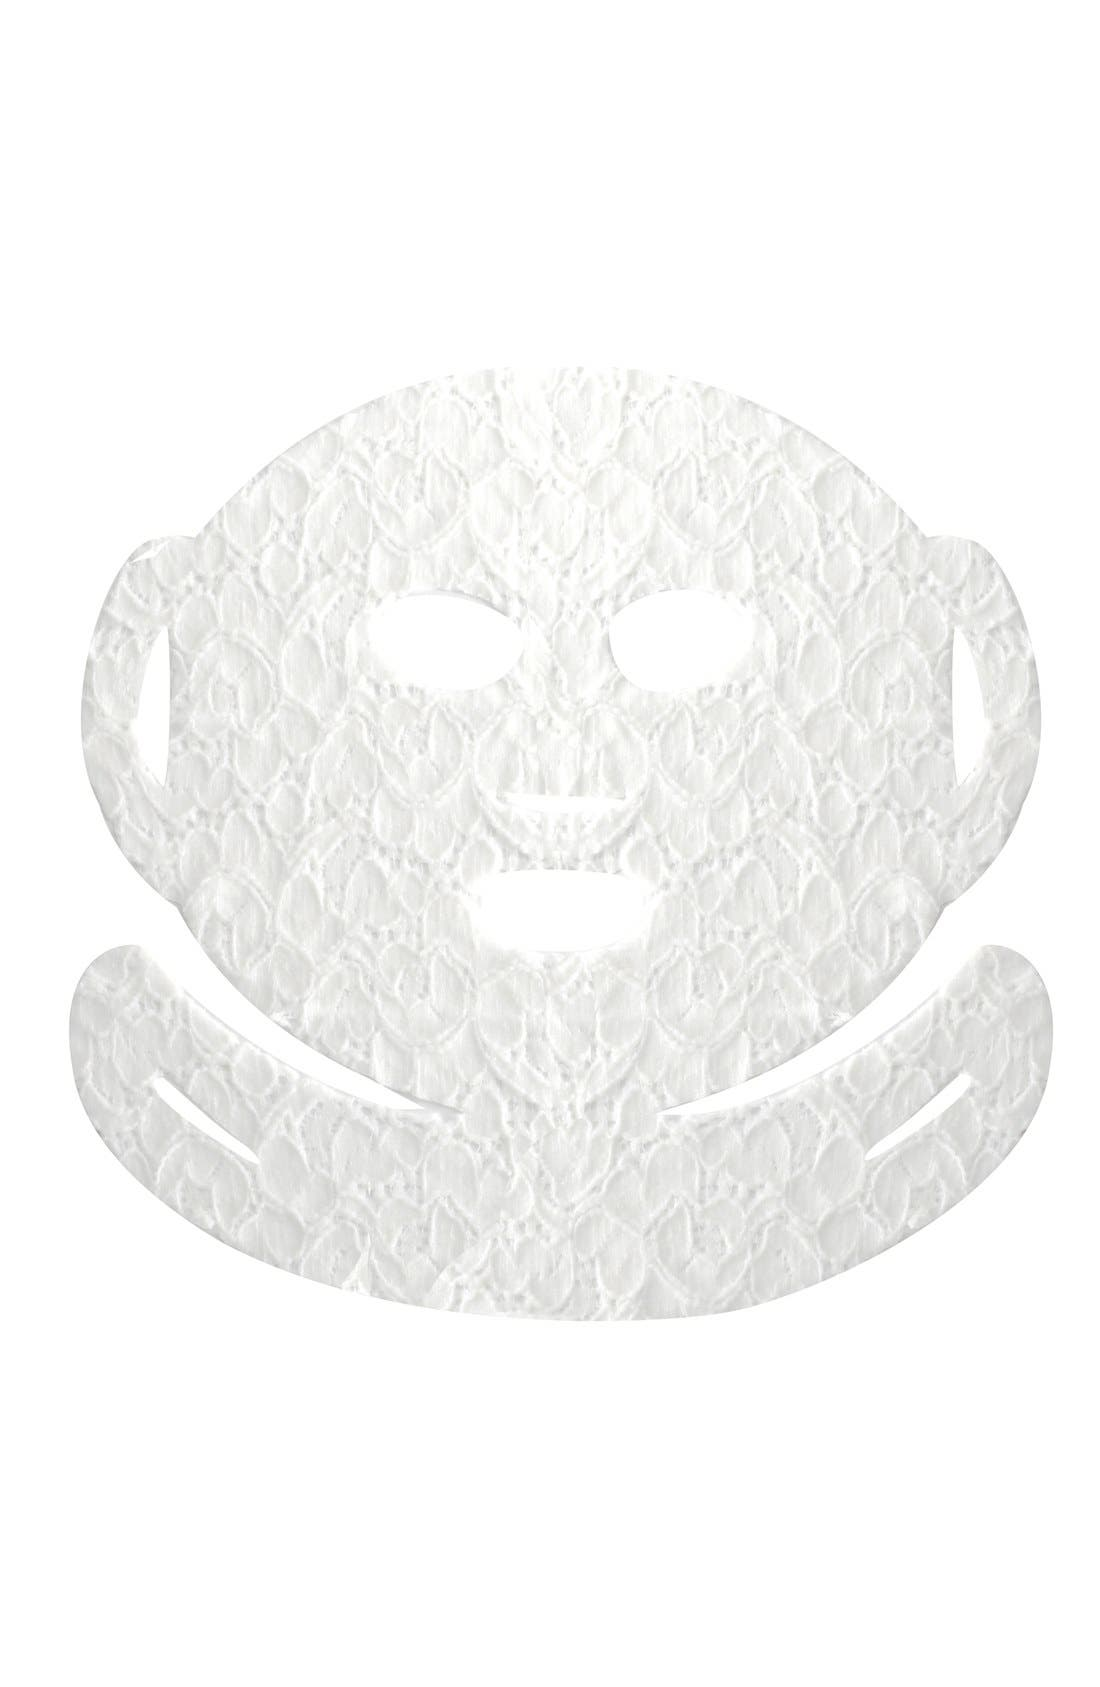 Lace Your Face Smoothing Peptides Compression Facial Mask,                             Alternate thumbnail 4, color,                             NONE